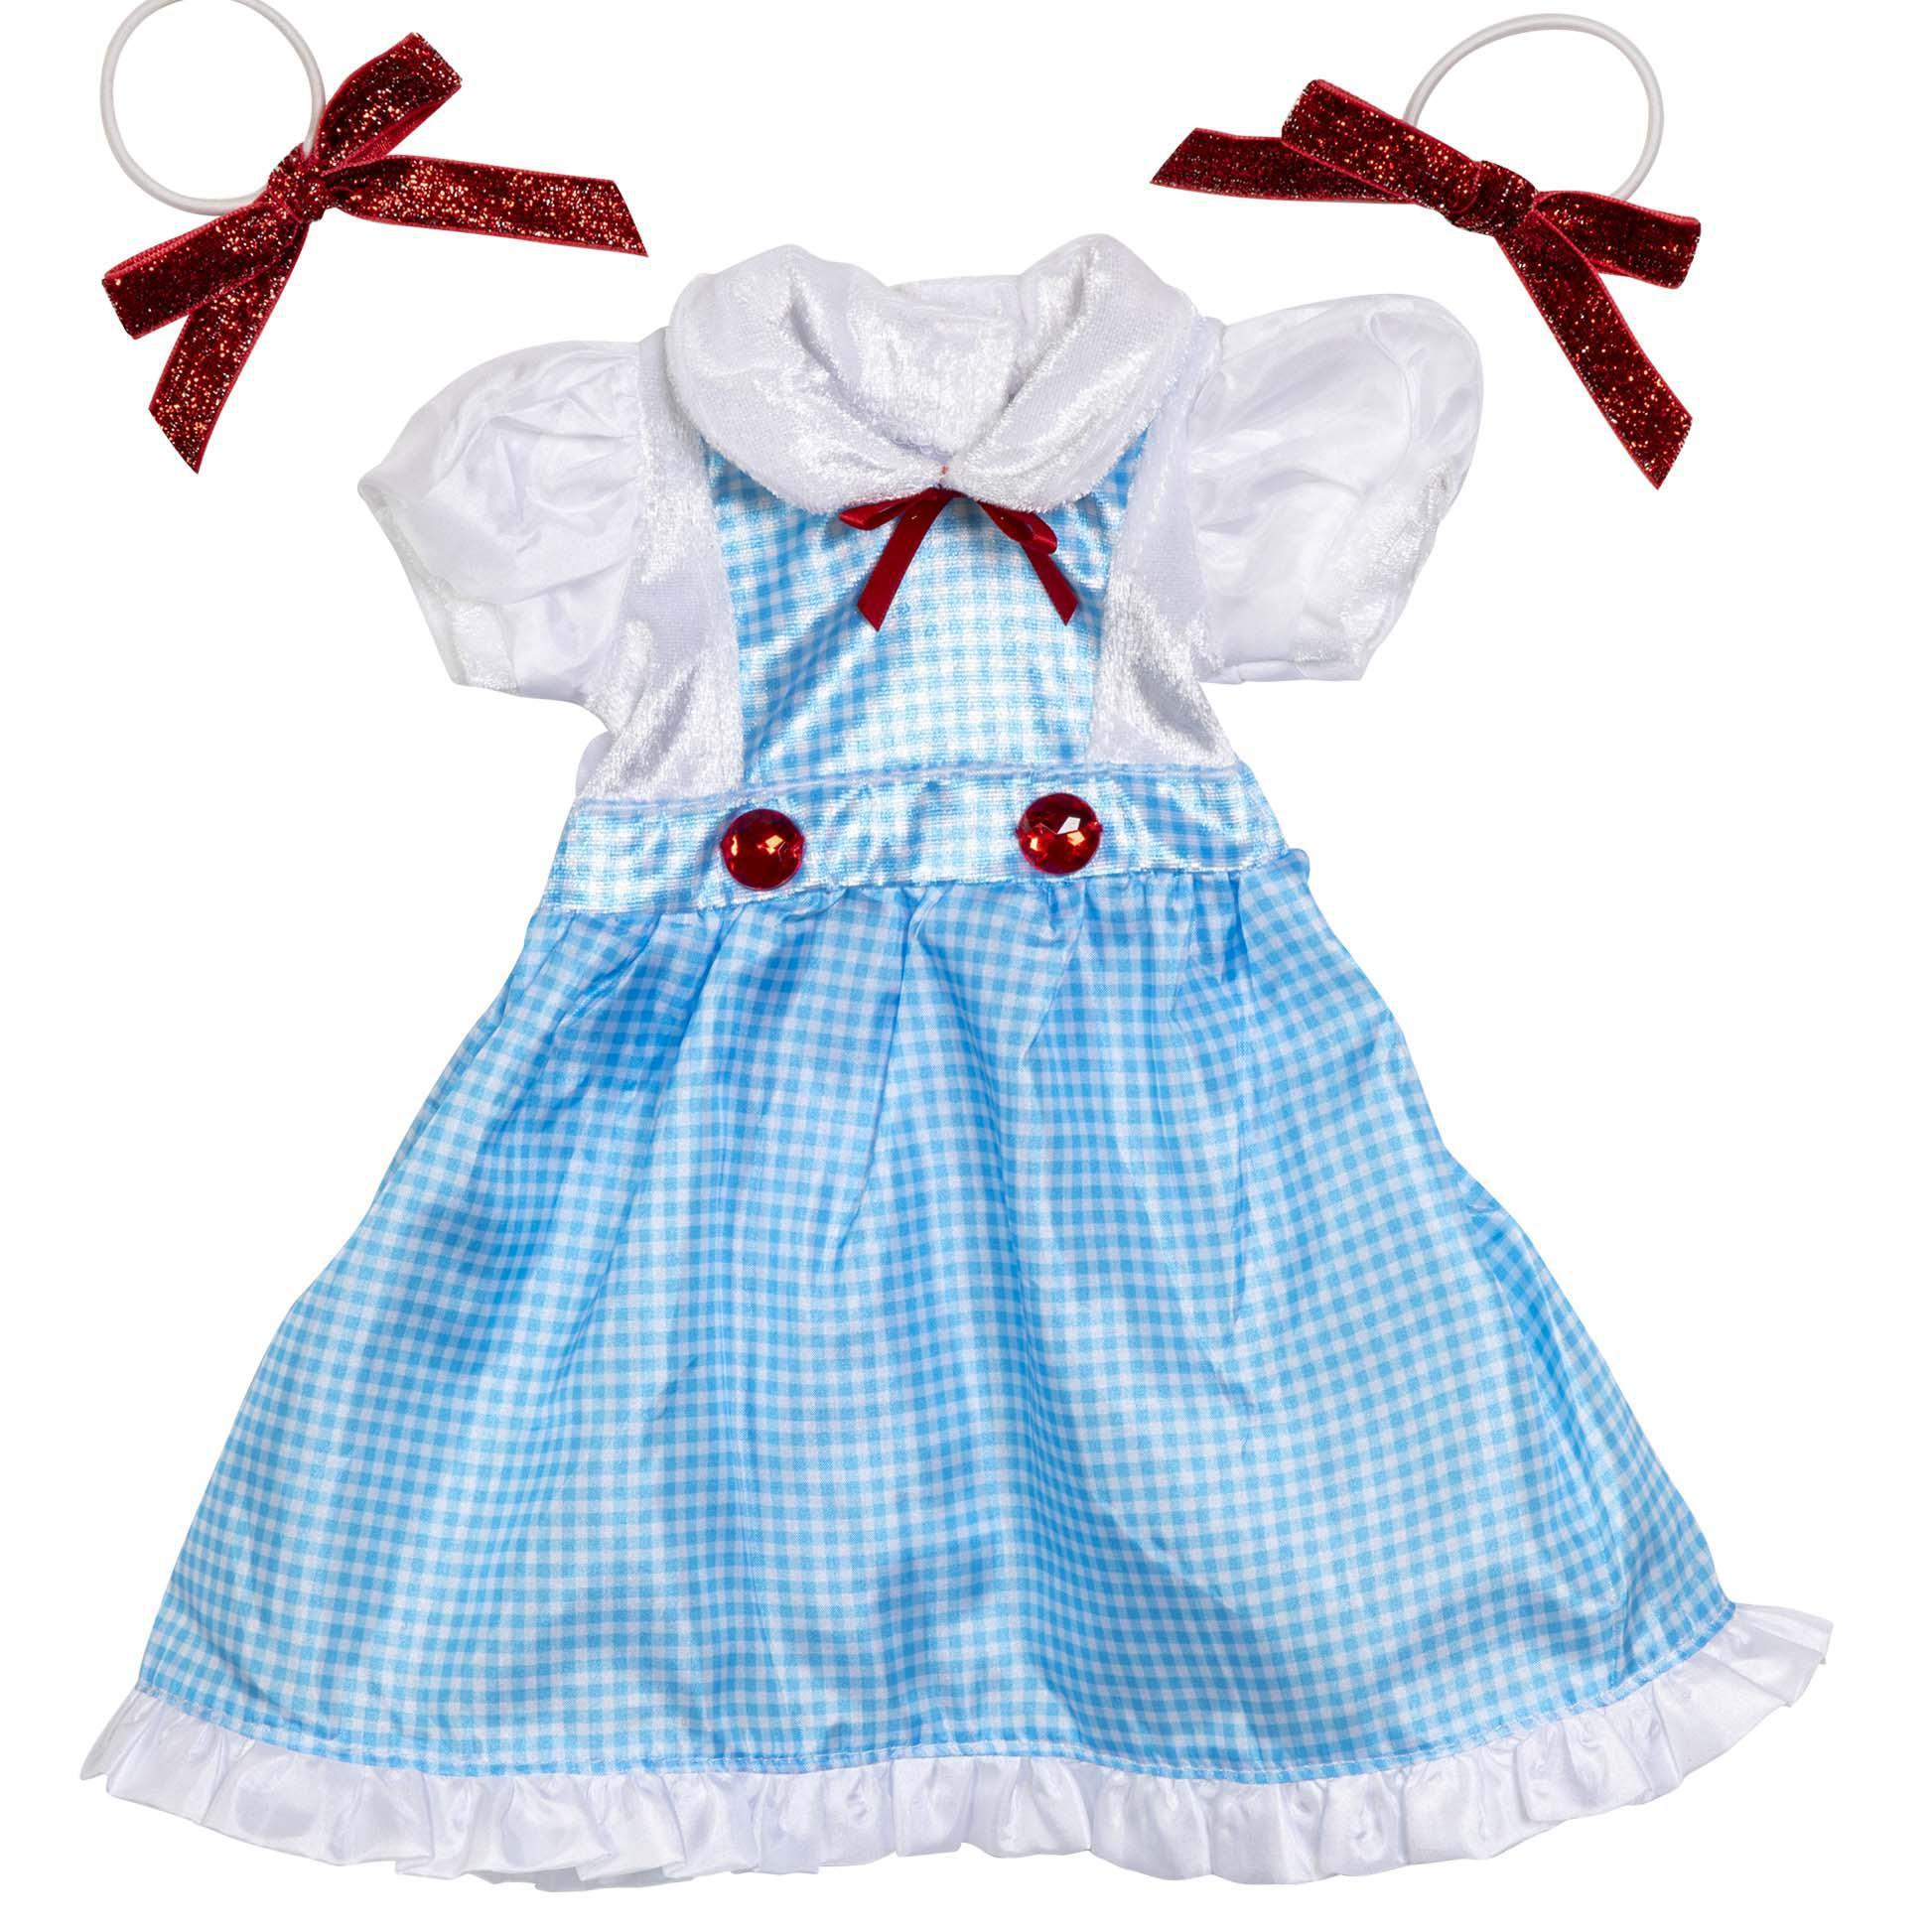 Lil Kansas Girl with Bows Dress